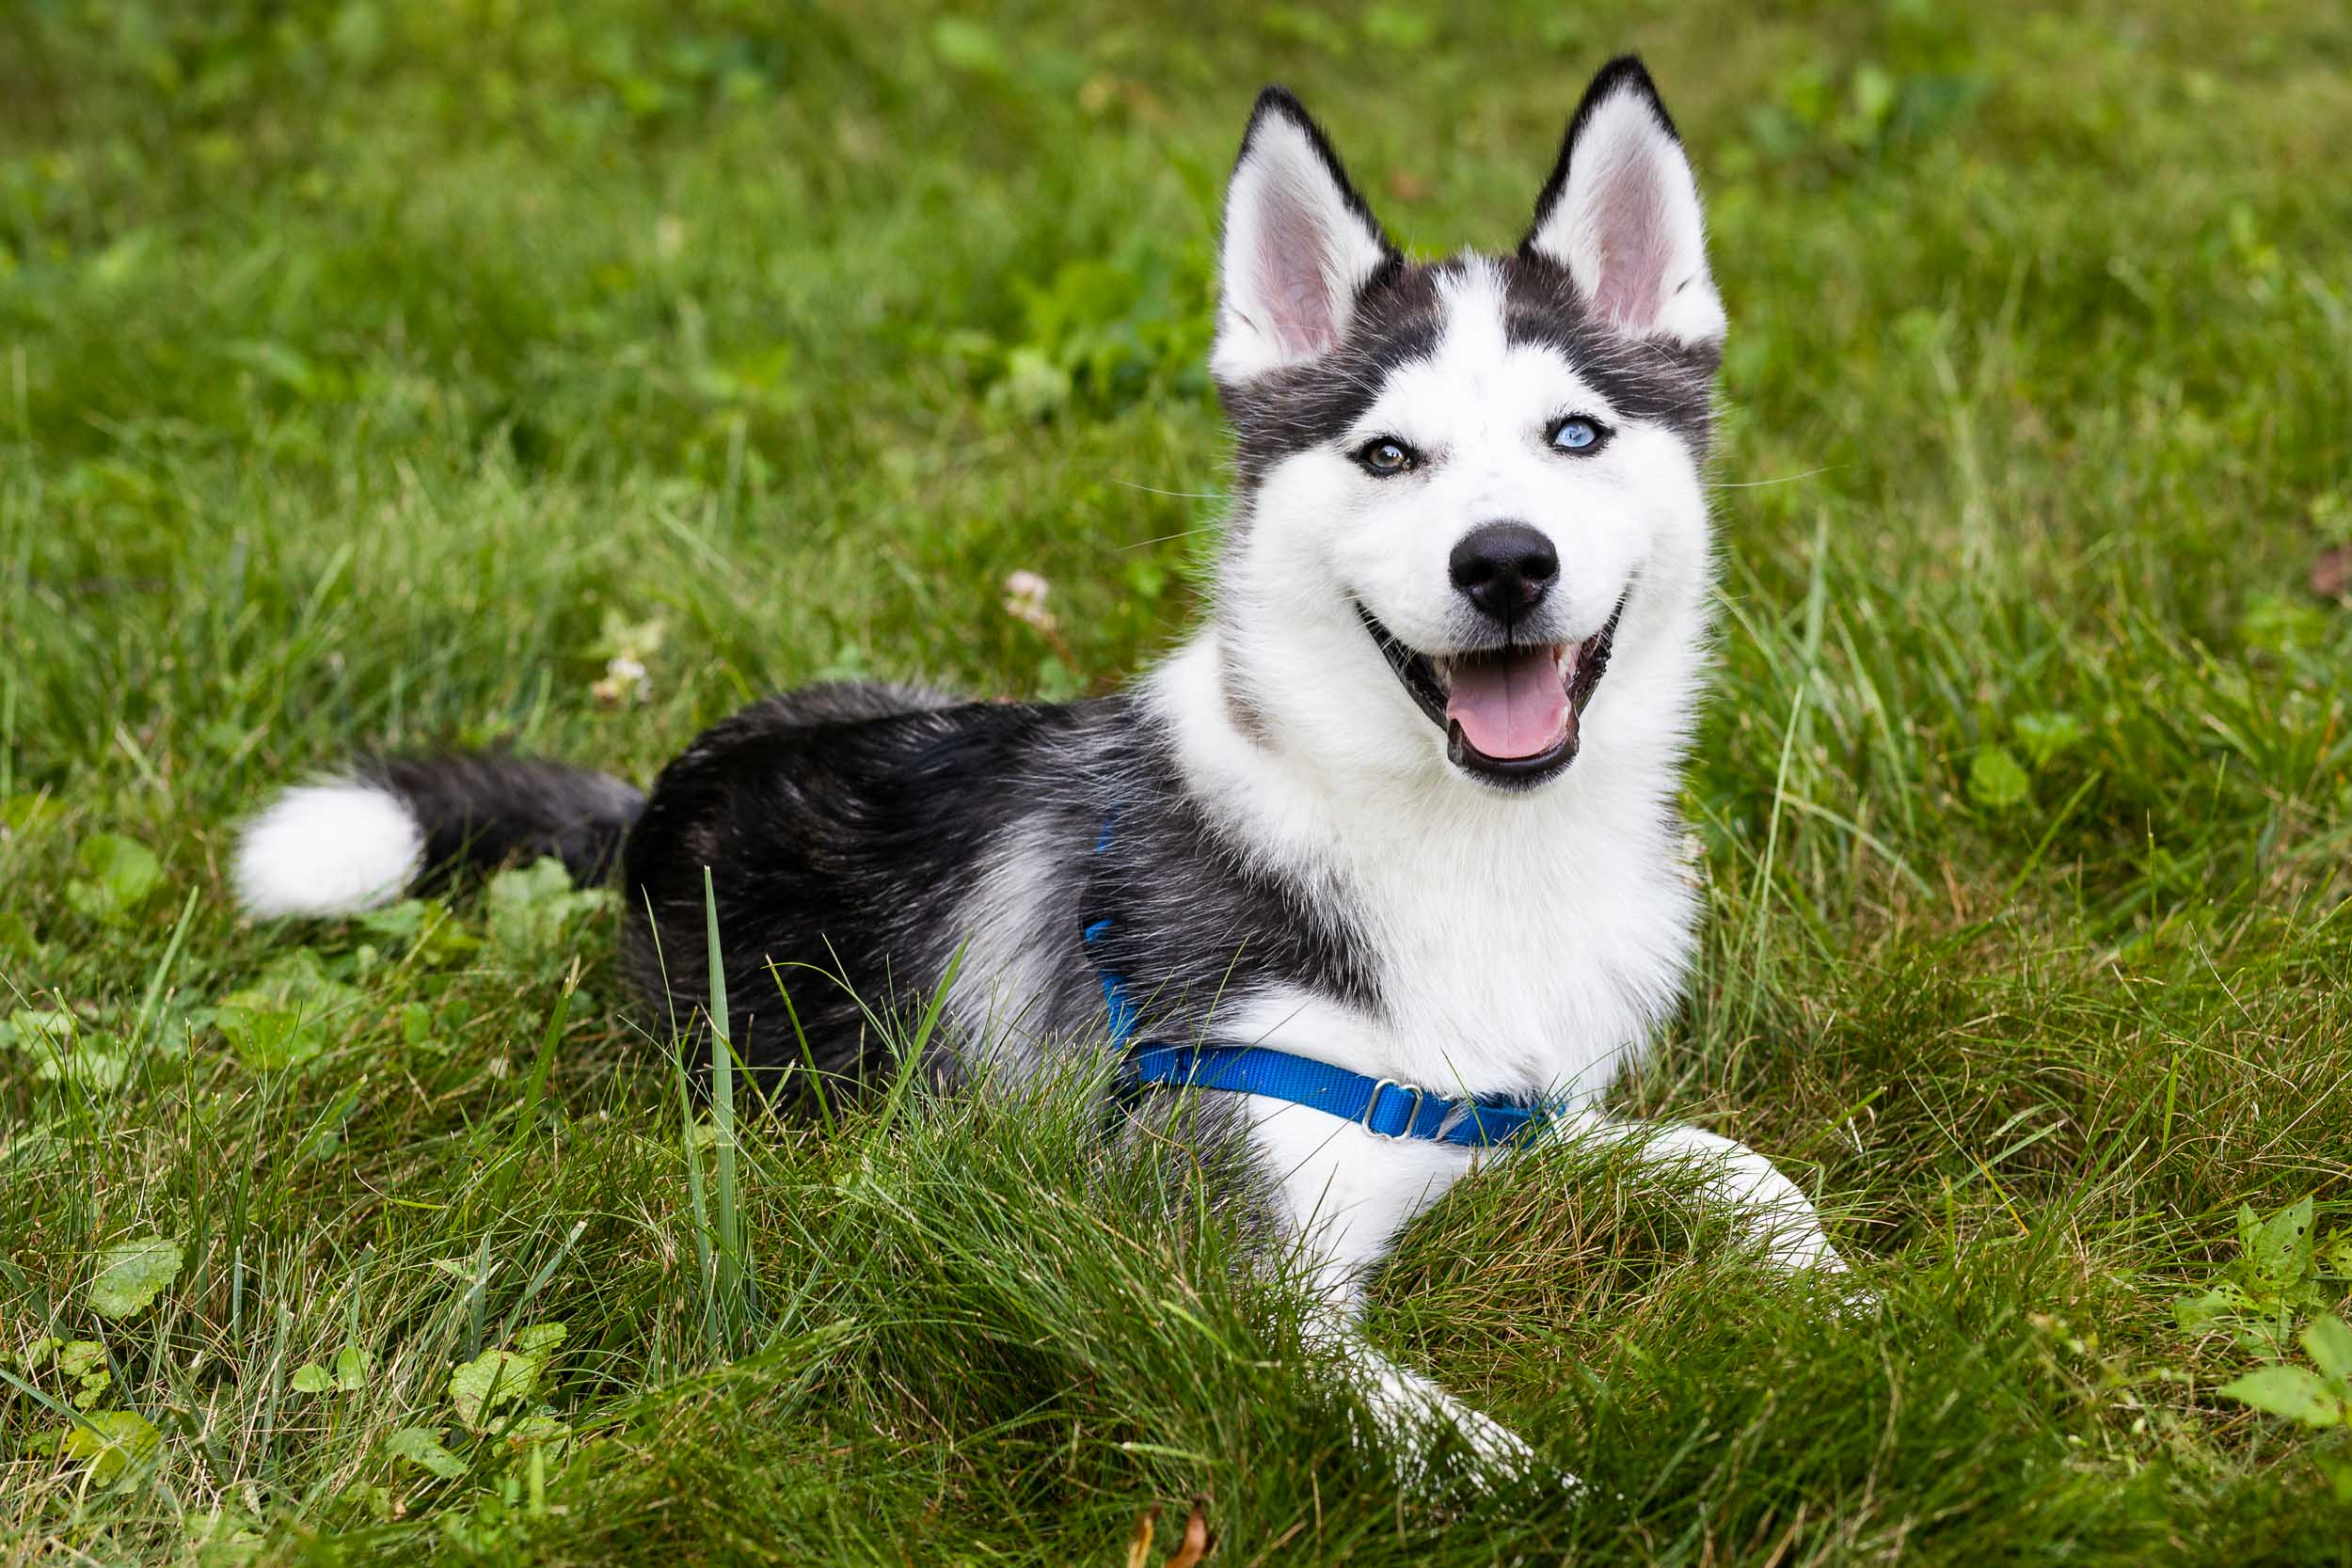 Tara Parekh Photography Alexandria VA Pet Photography Husky Mix Puppy Dog-2.jpg